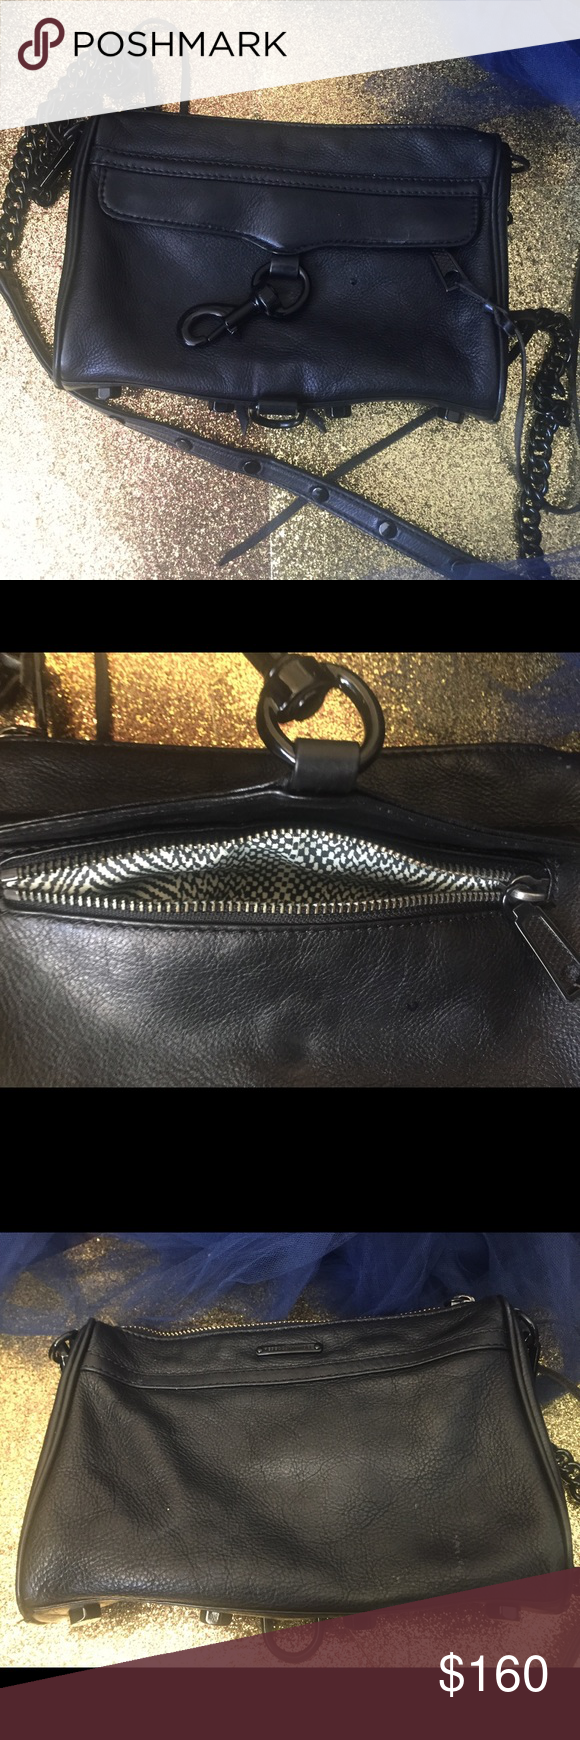 REBECCA MINKOFF RARE Mini MAB Crossbody ALL-BLACK I will let the picture be her waterfall of praise and adulation.  I 💚her still so so much but I m...